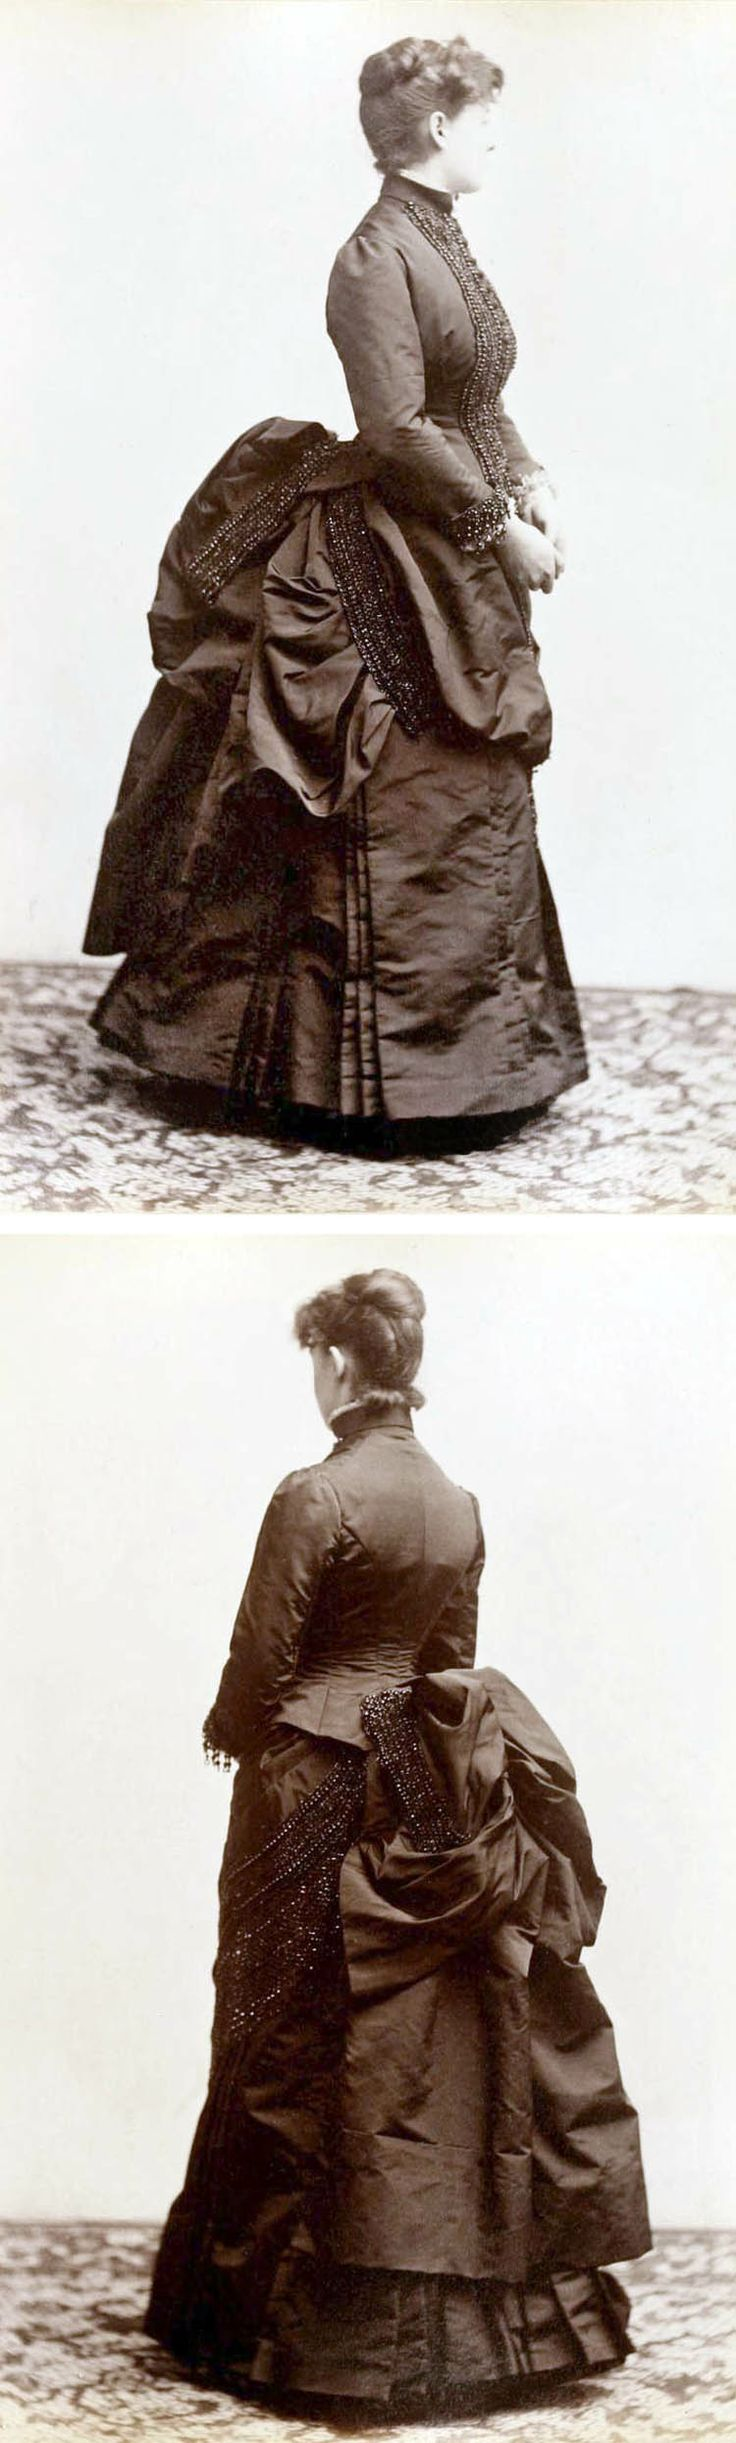 From the Lord & Taylor catalog, The Latest Style in Ladies' Suits, 1885. Winterthur Museum via The Wayback Machine